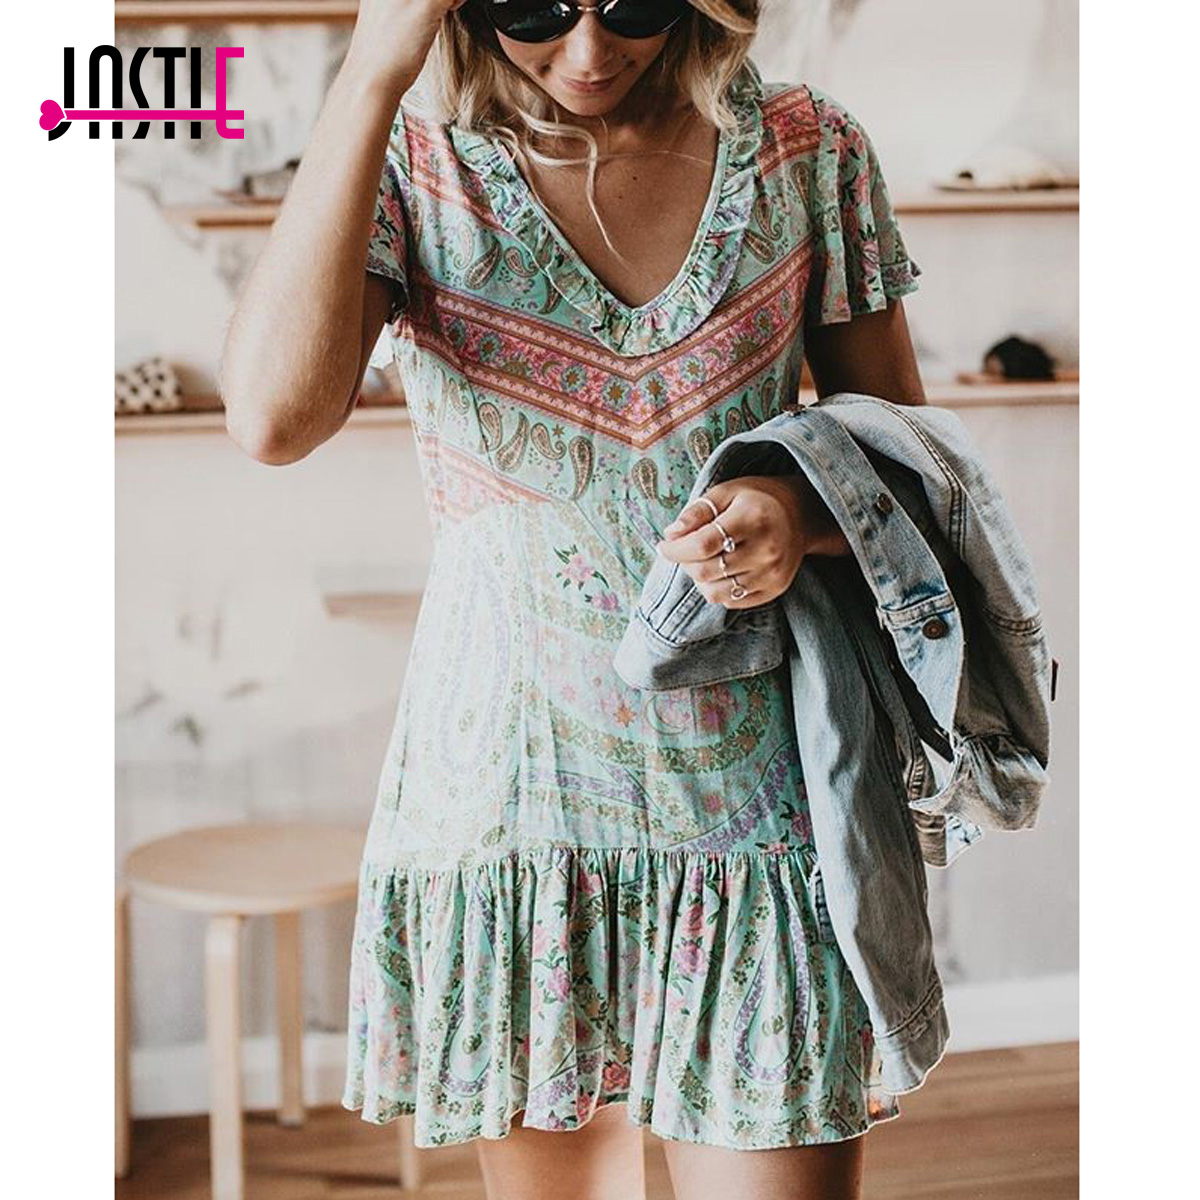 Jastie City Lights Mini Dress Frill V-Neck Short Sleeve Summer Dresses vintage Print Women Dress Boho Casual Beach Dresses 2019 Платье